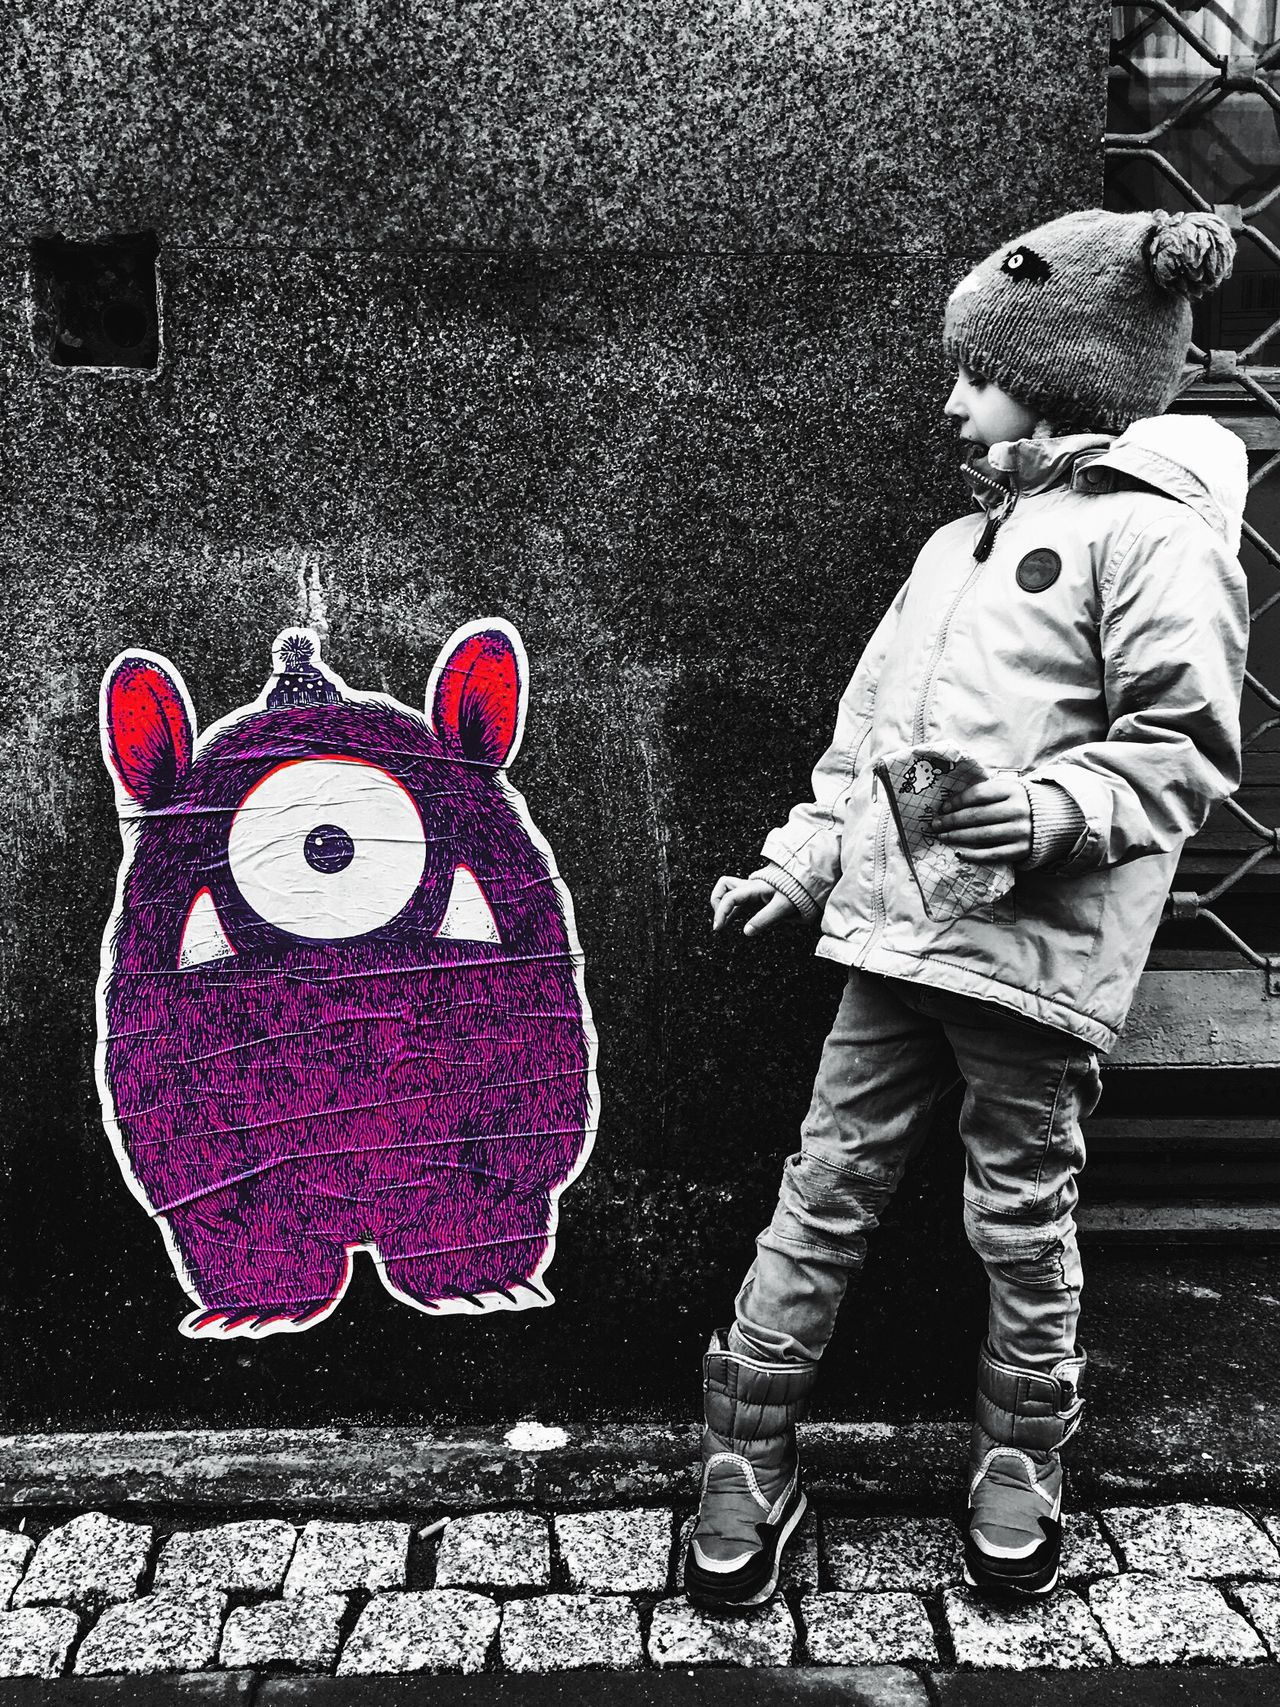 One Person Childhood Outdoors Blackandwhite City Industrial Cityscape City Life Streetphotography Street Art Kids Monster Pink Color